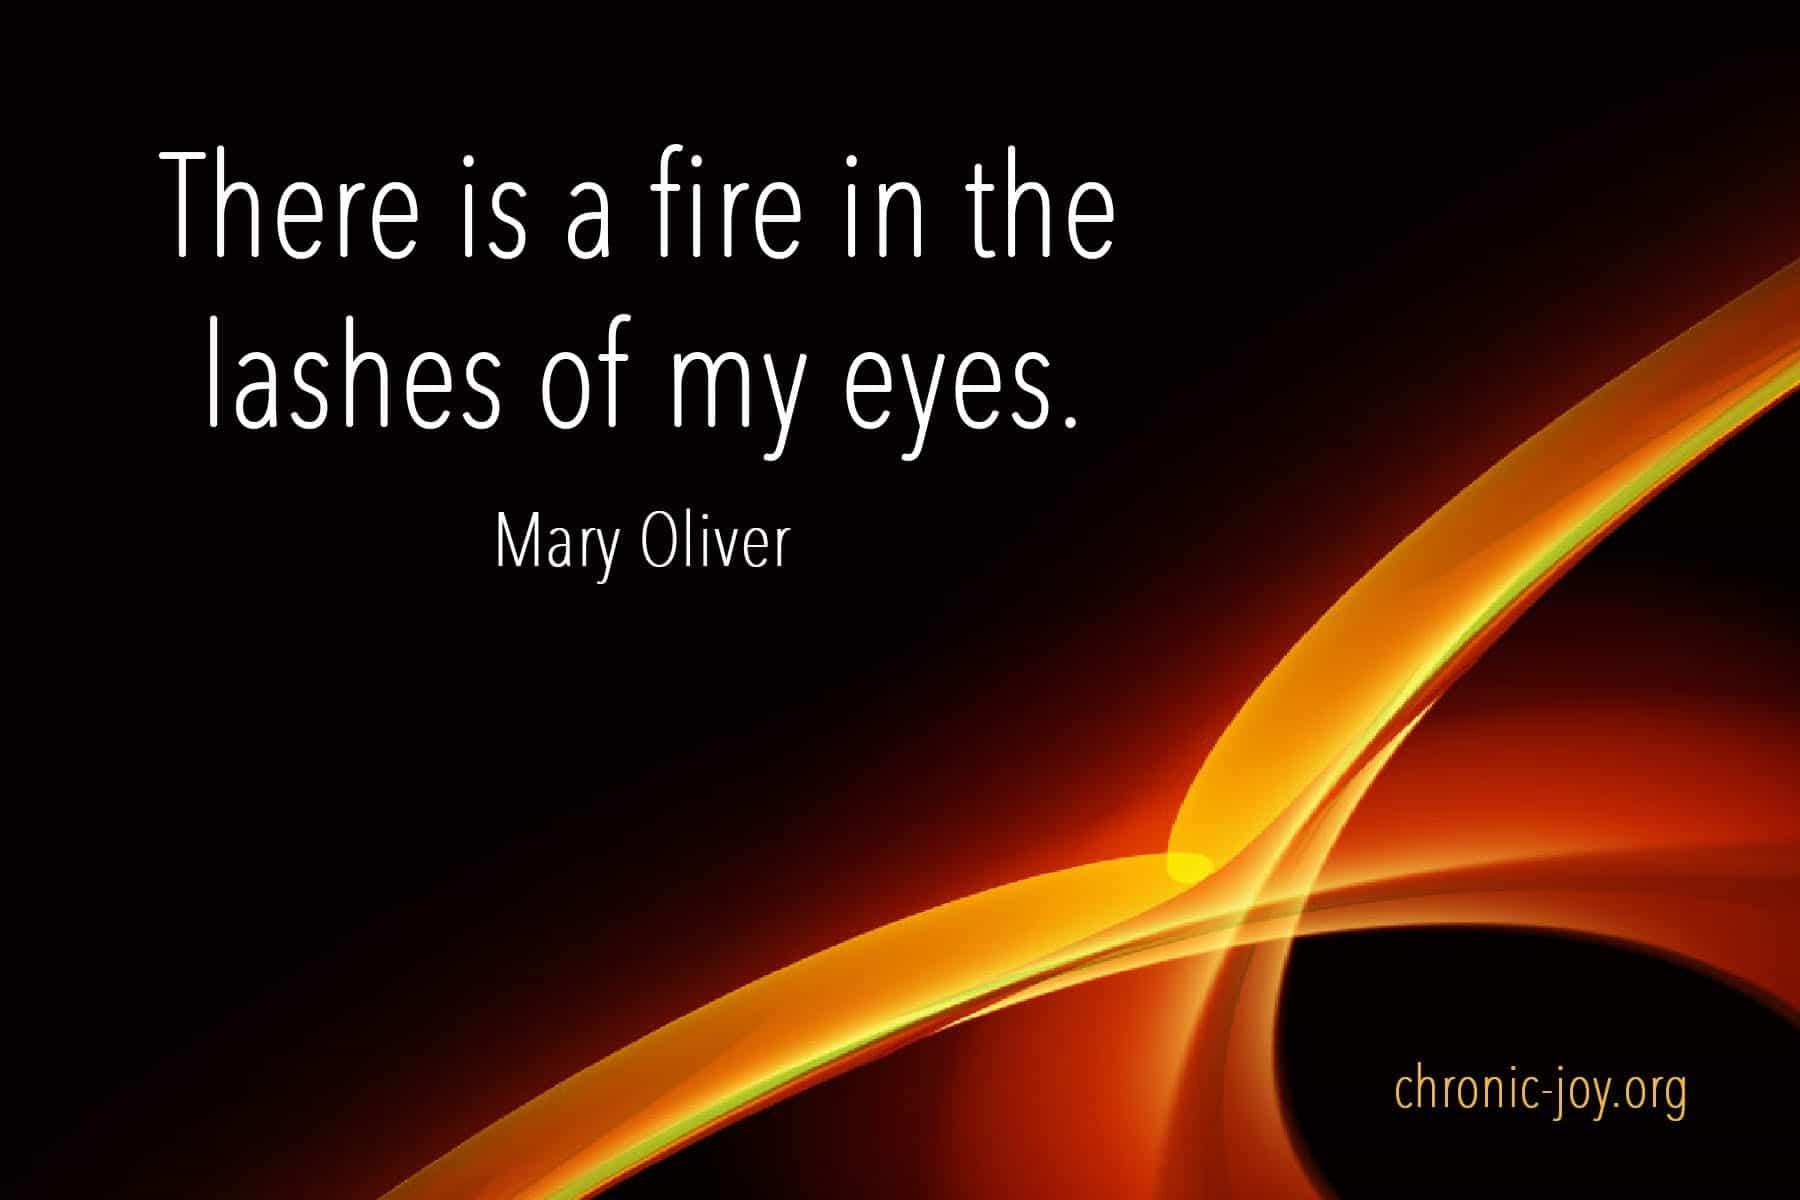 There is a fire in the lashes of my eyes.